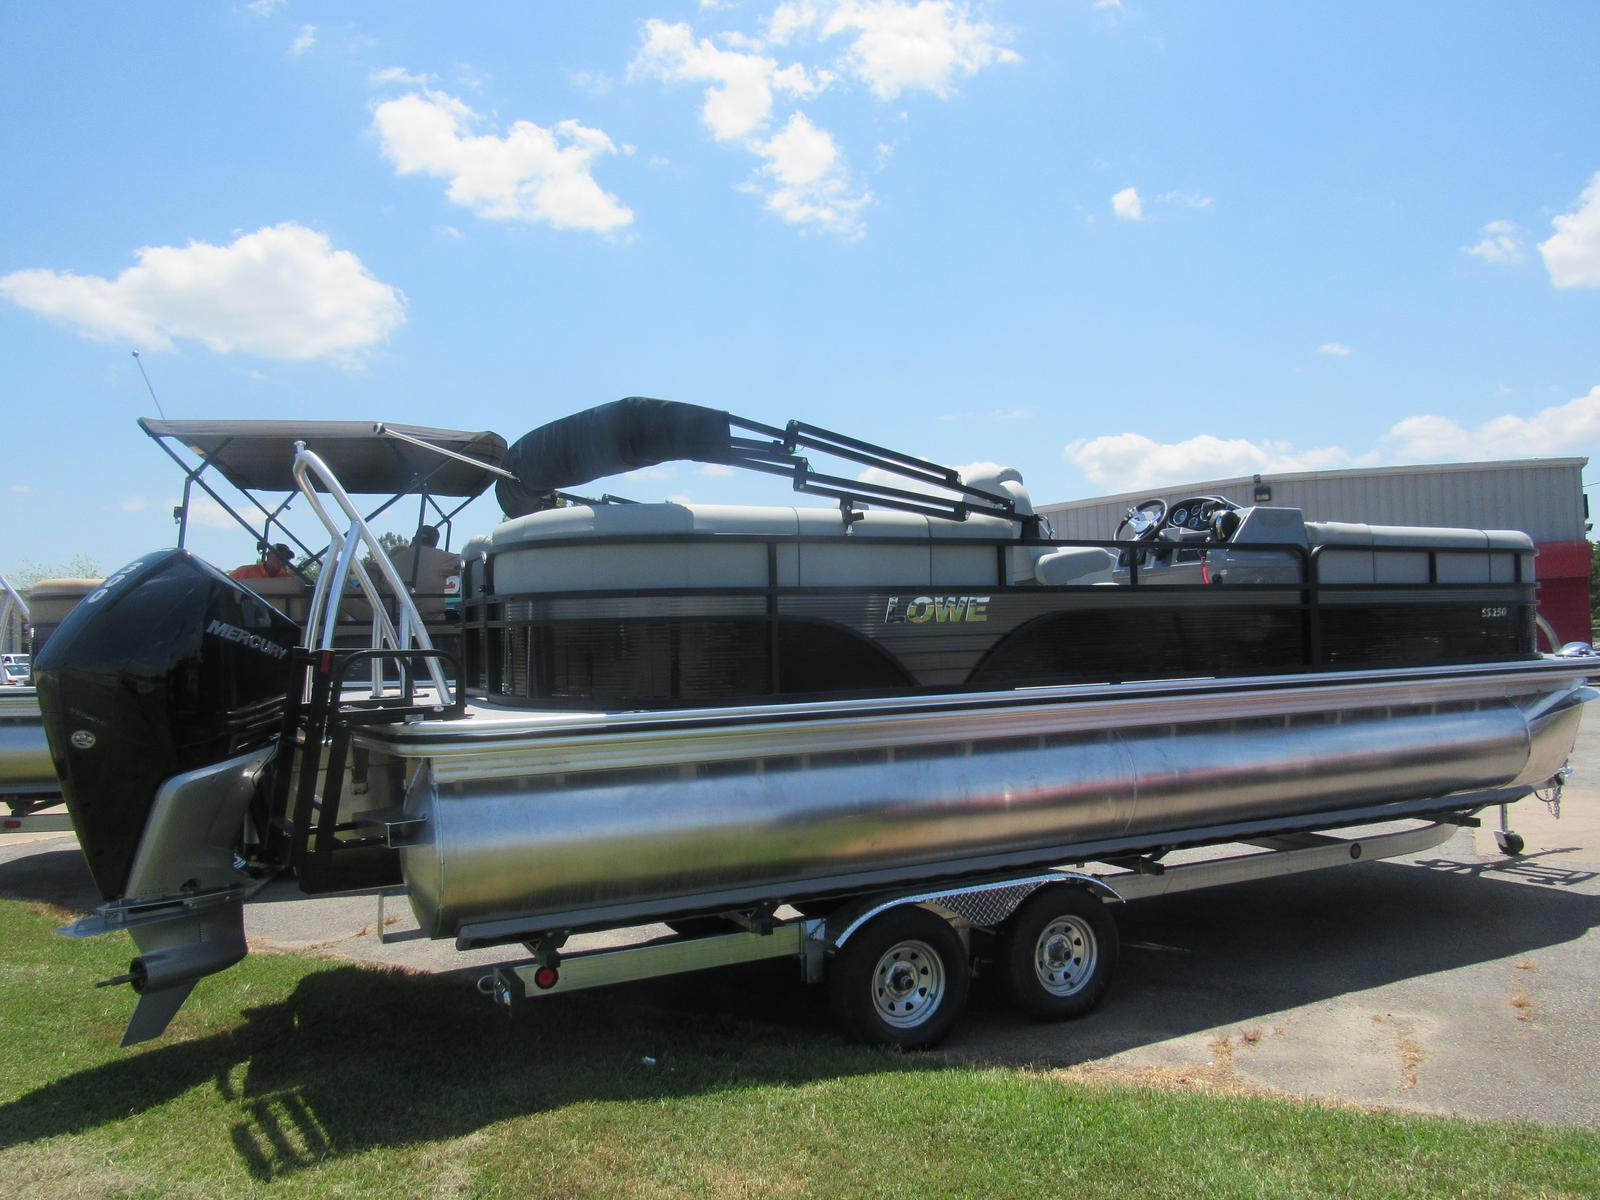 New Inventory from Lowe and War Eagle H2O Sportz & Marine